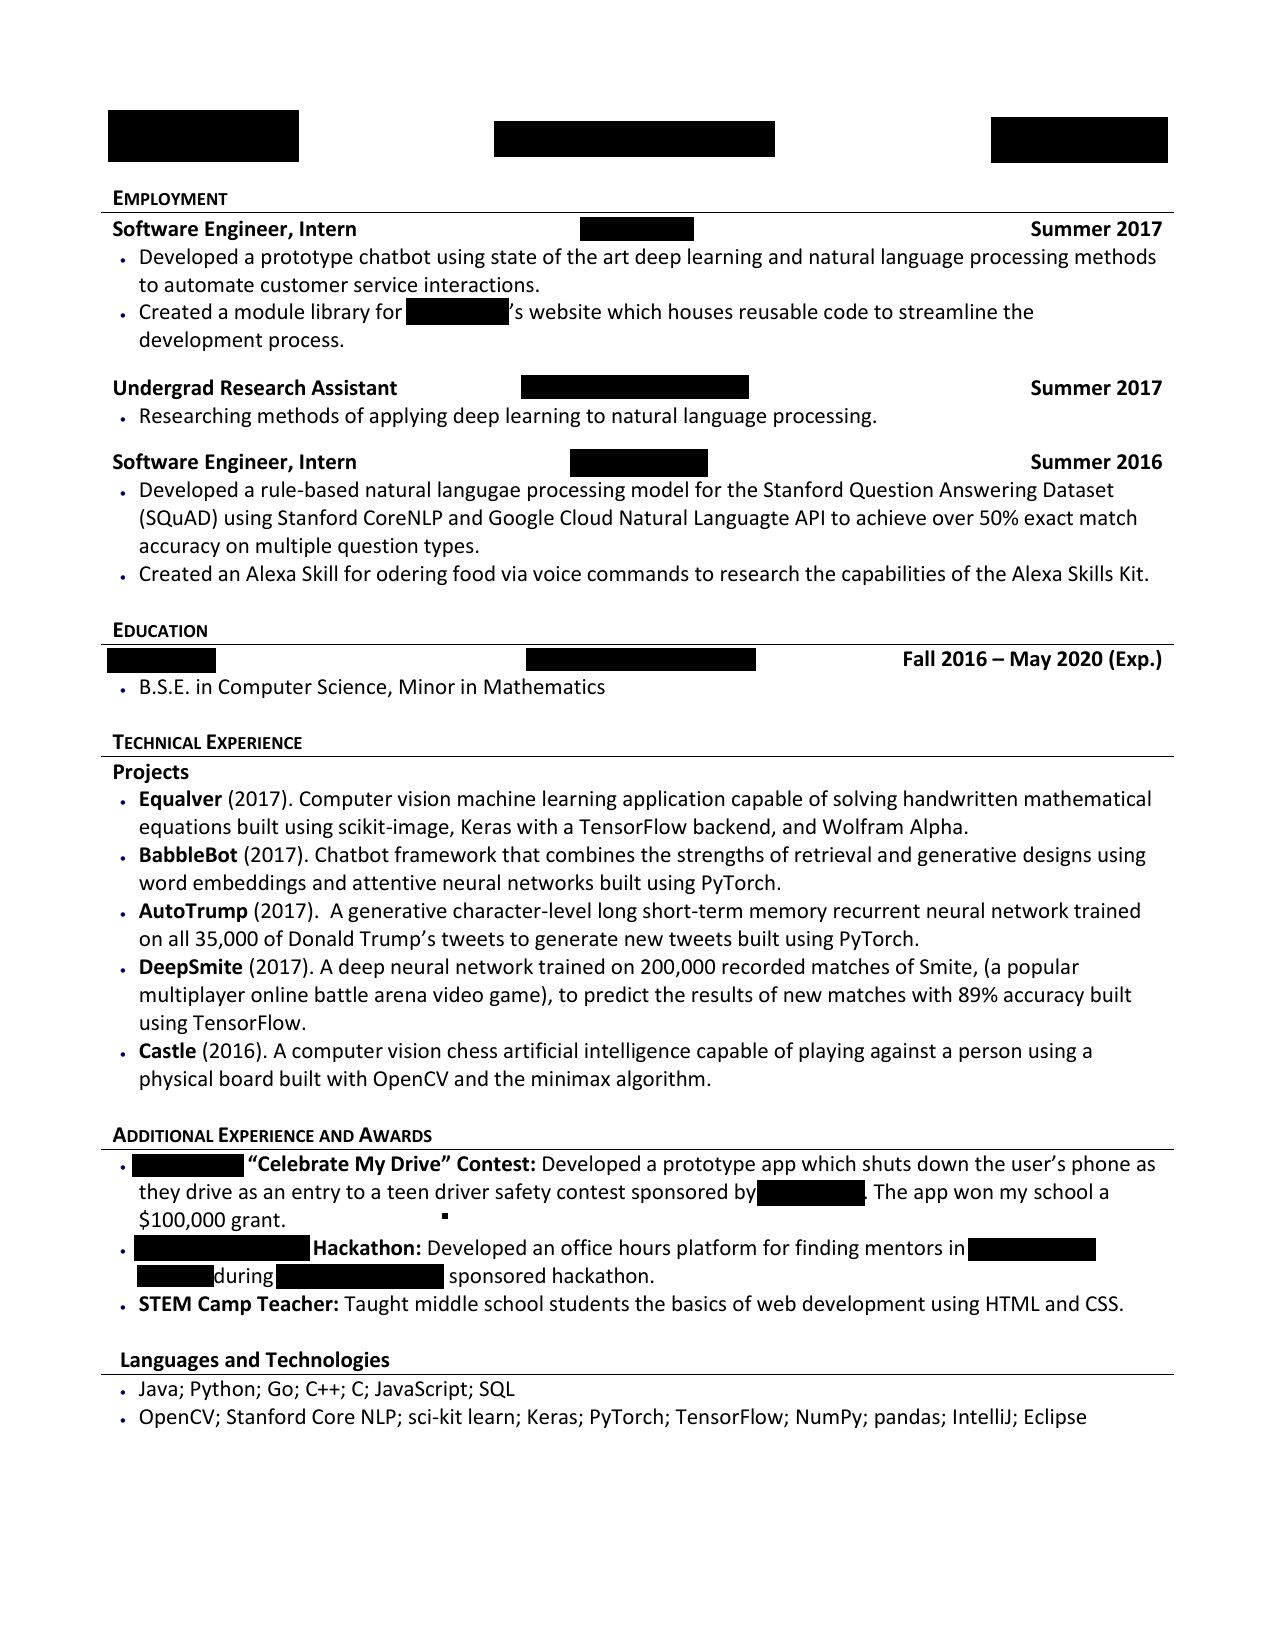 Computer Science Undergraduate Resume Trendy Puter Science